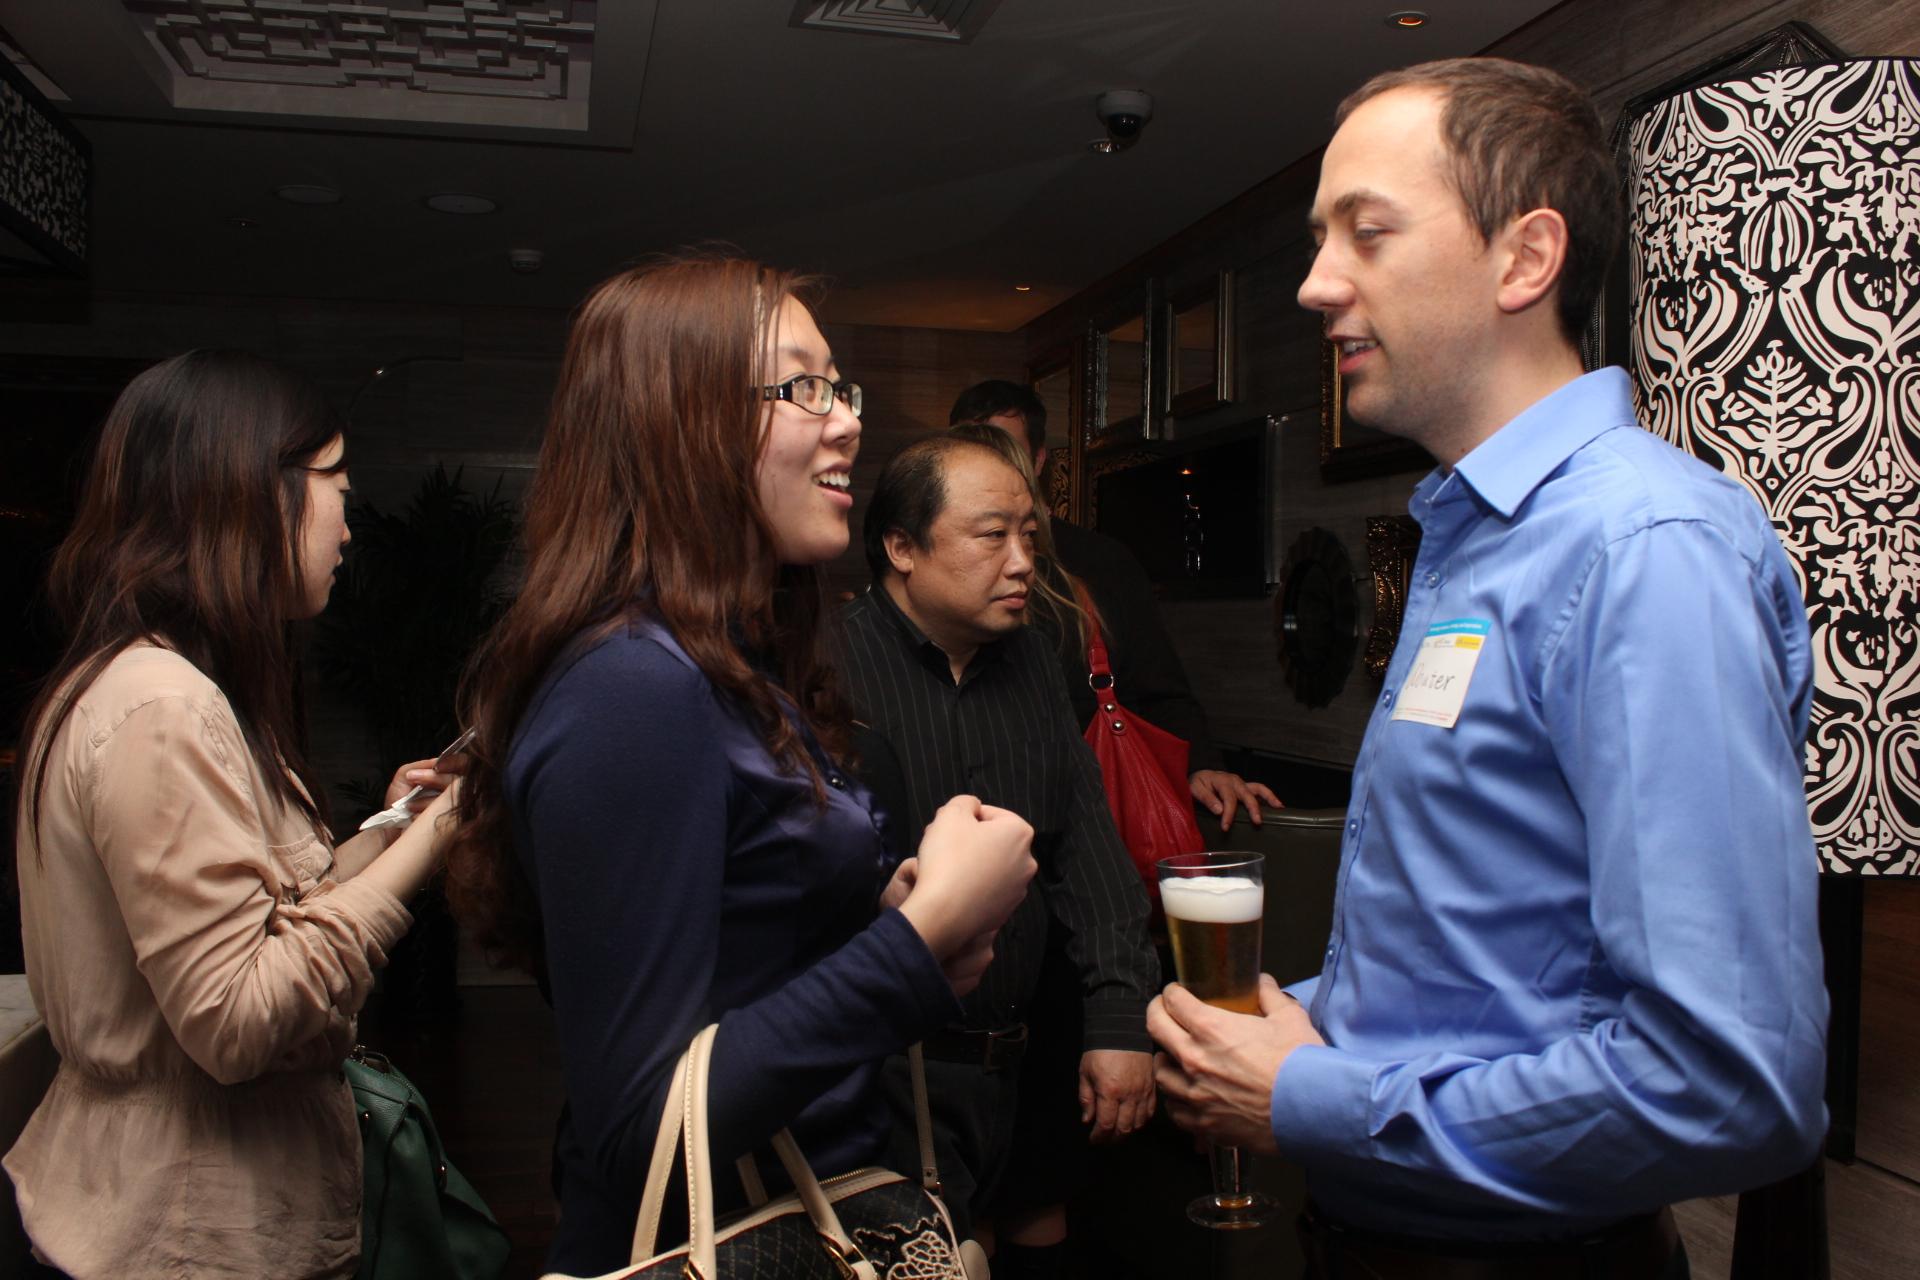 April 10 Networking evening for HR